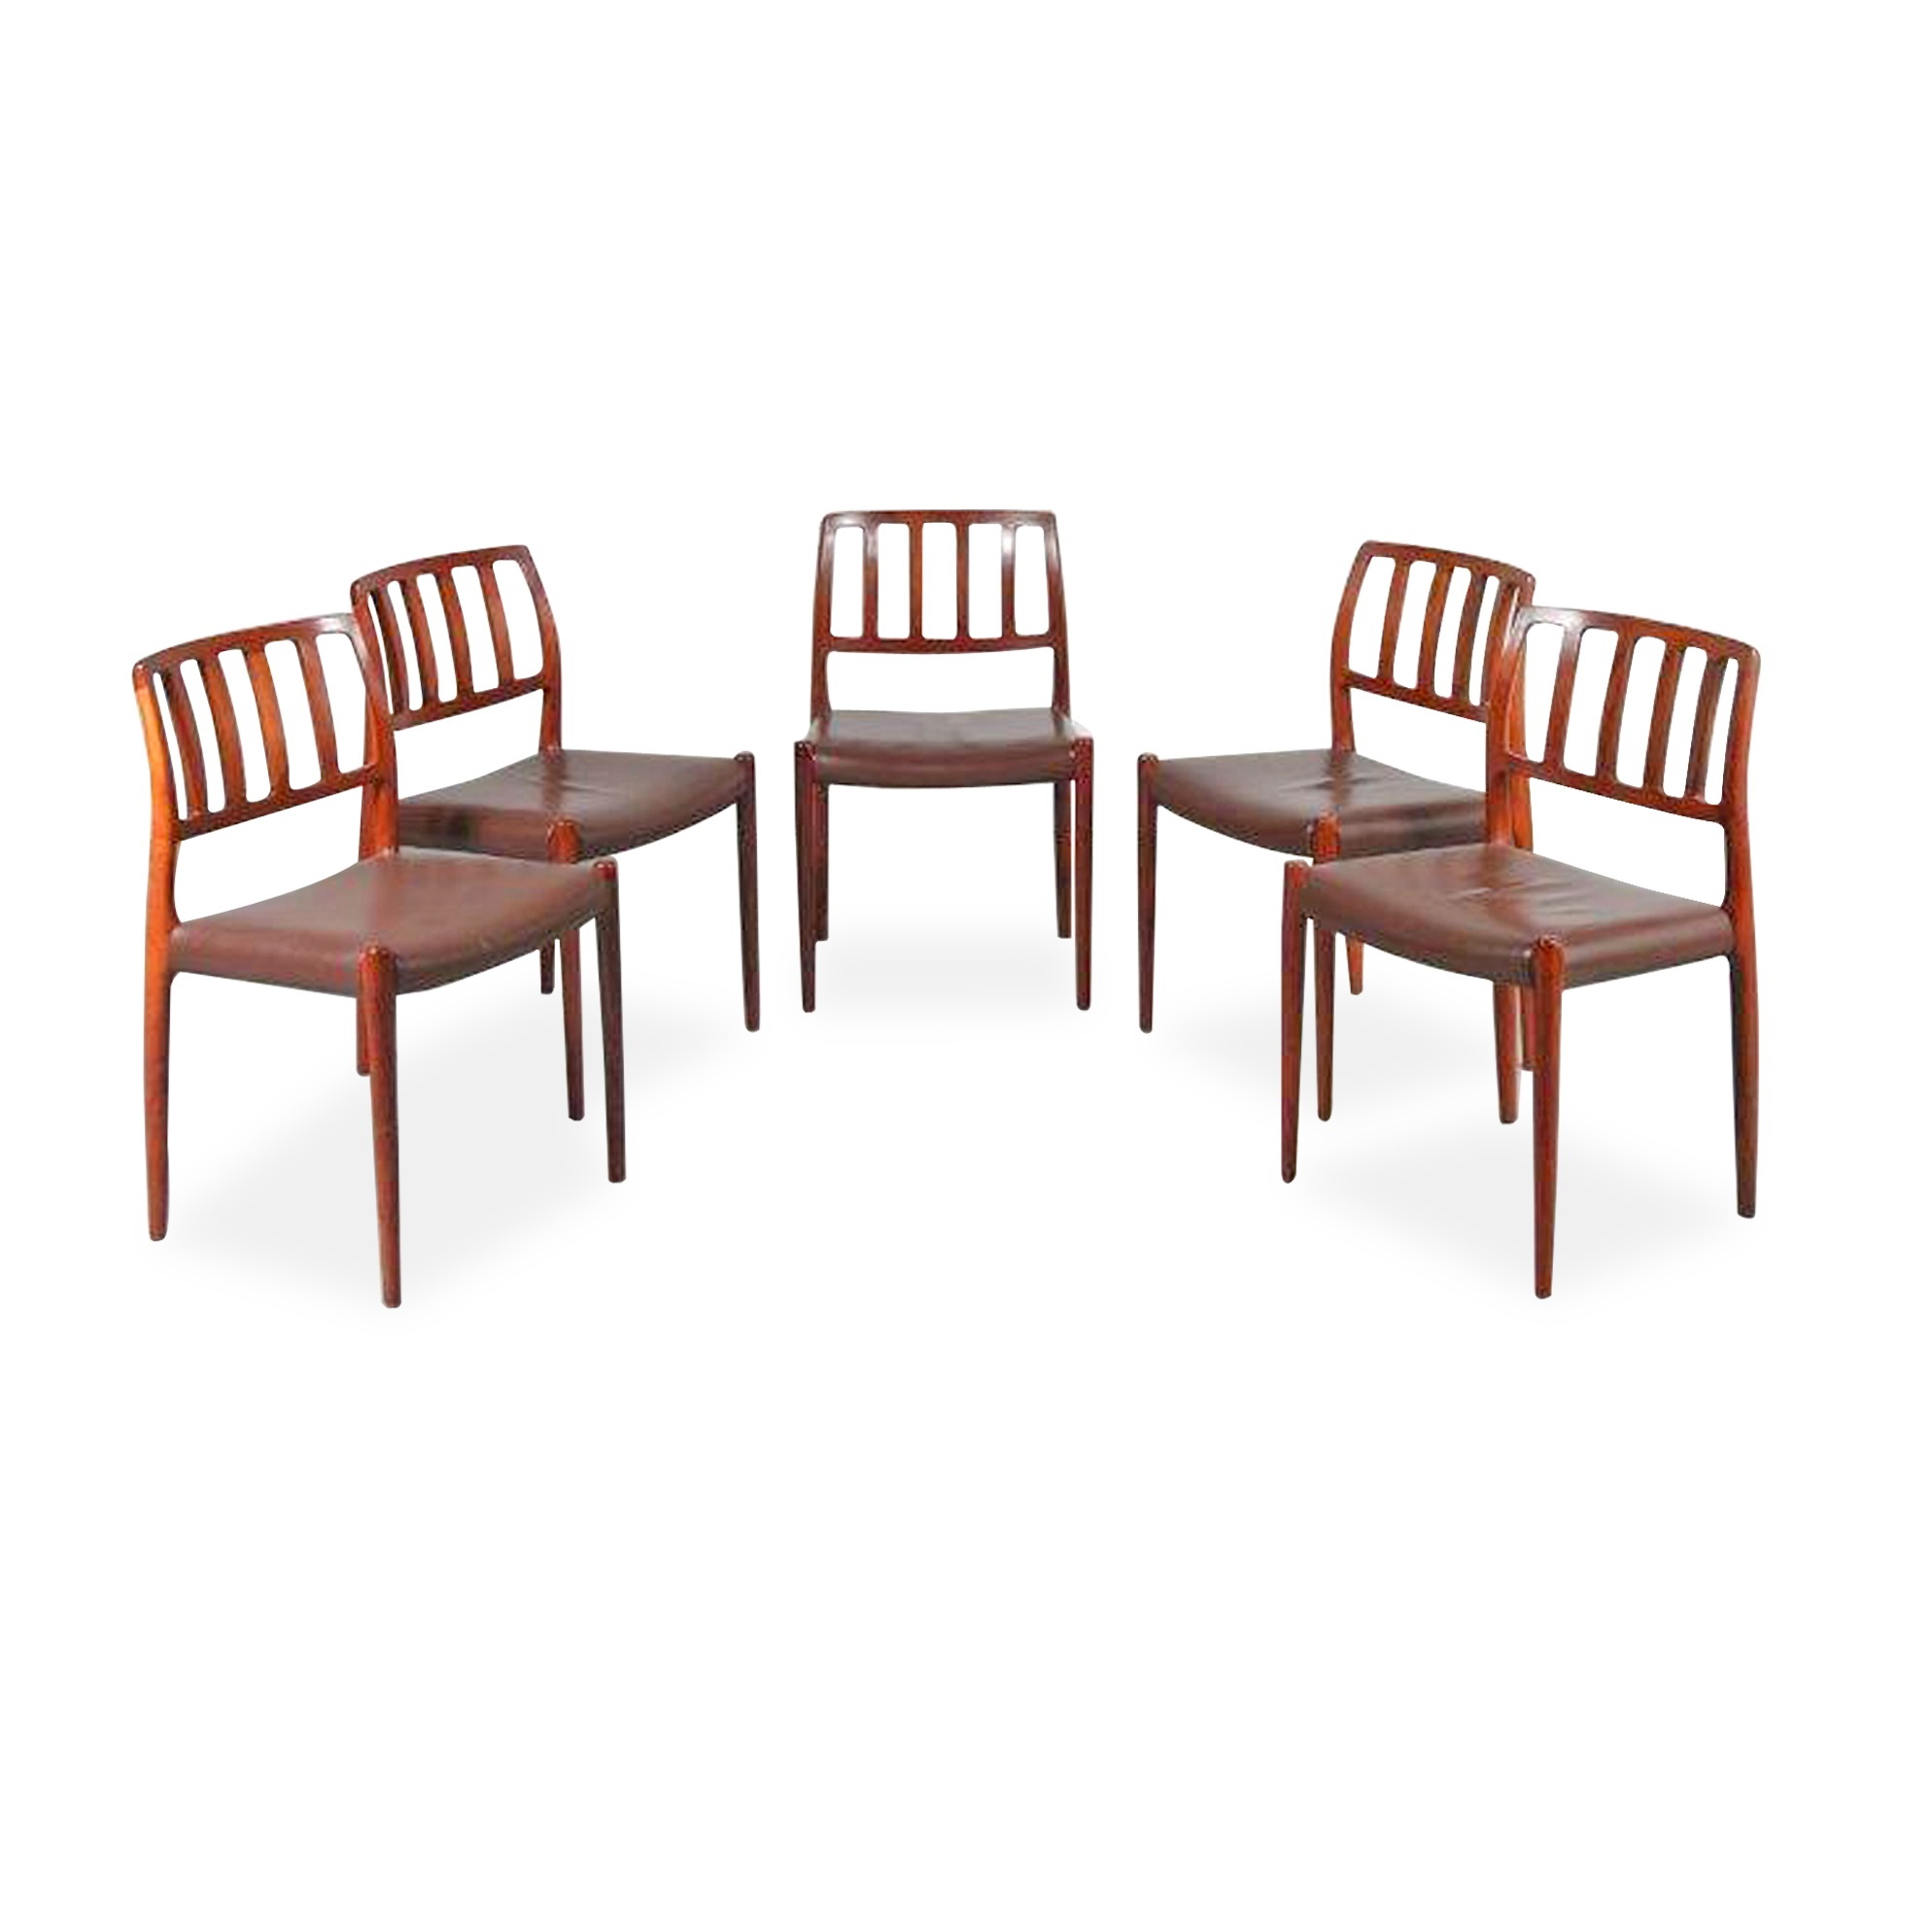 m23534 1960s Unique set of 5 rosewooden dining chairs with original brown leather upholstery Model 83 Moller Moller / Denmark